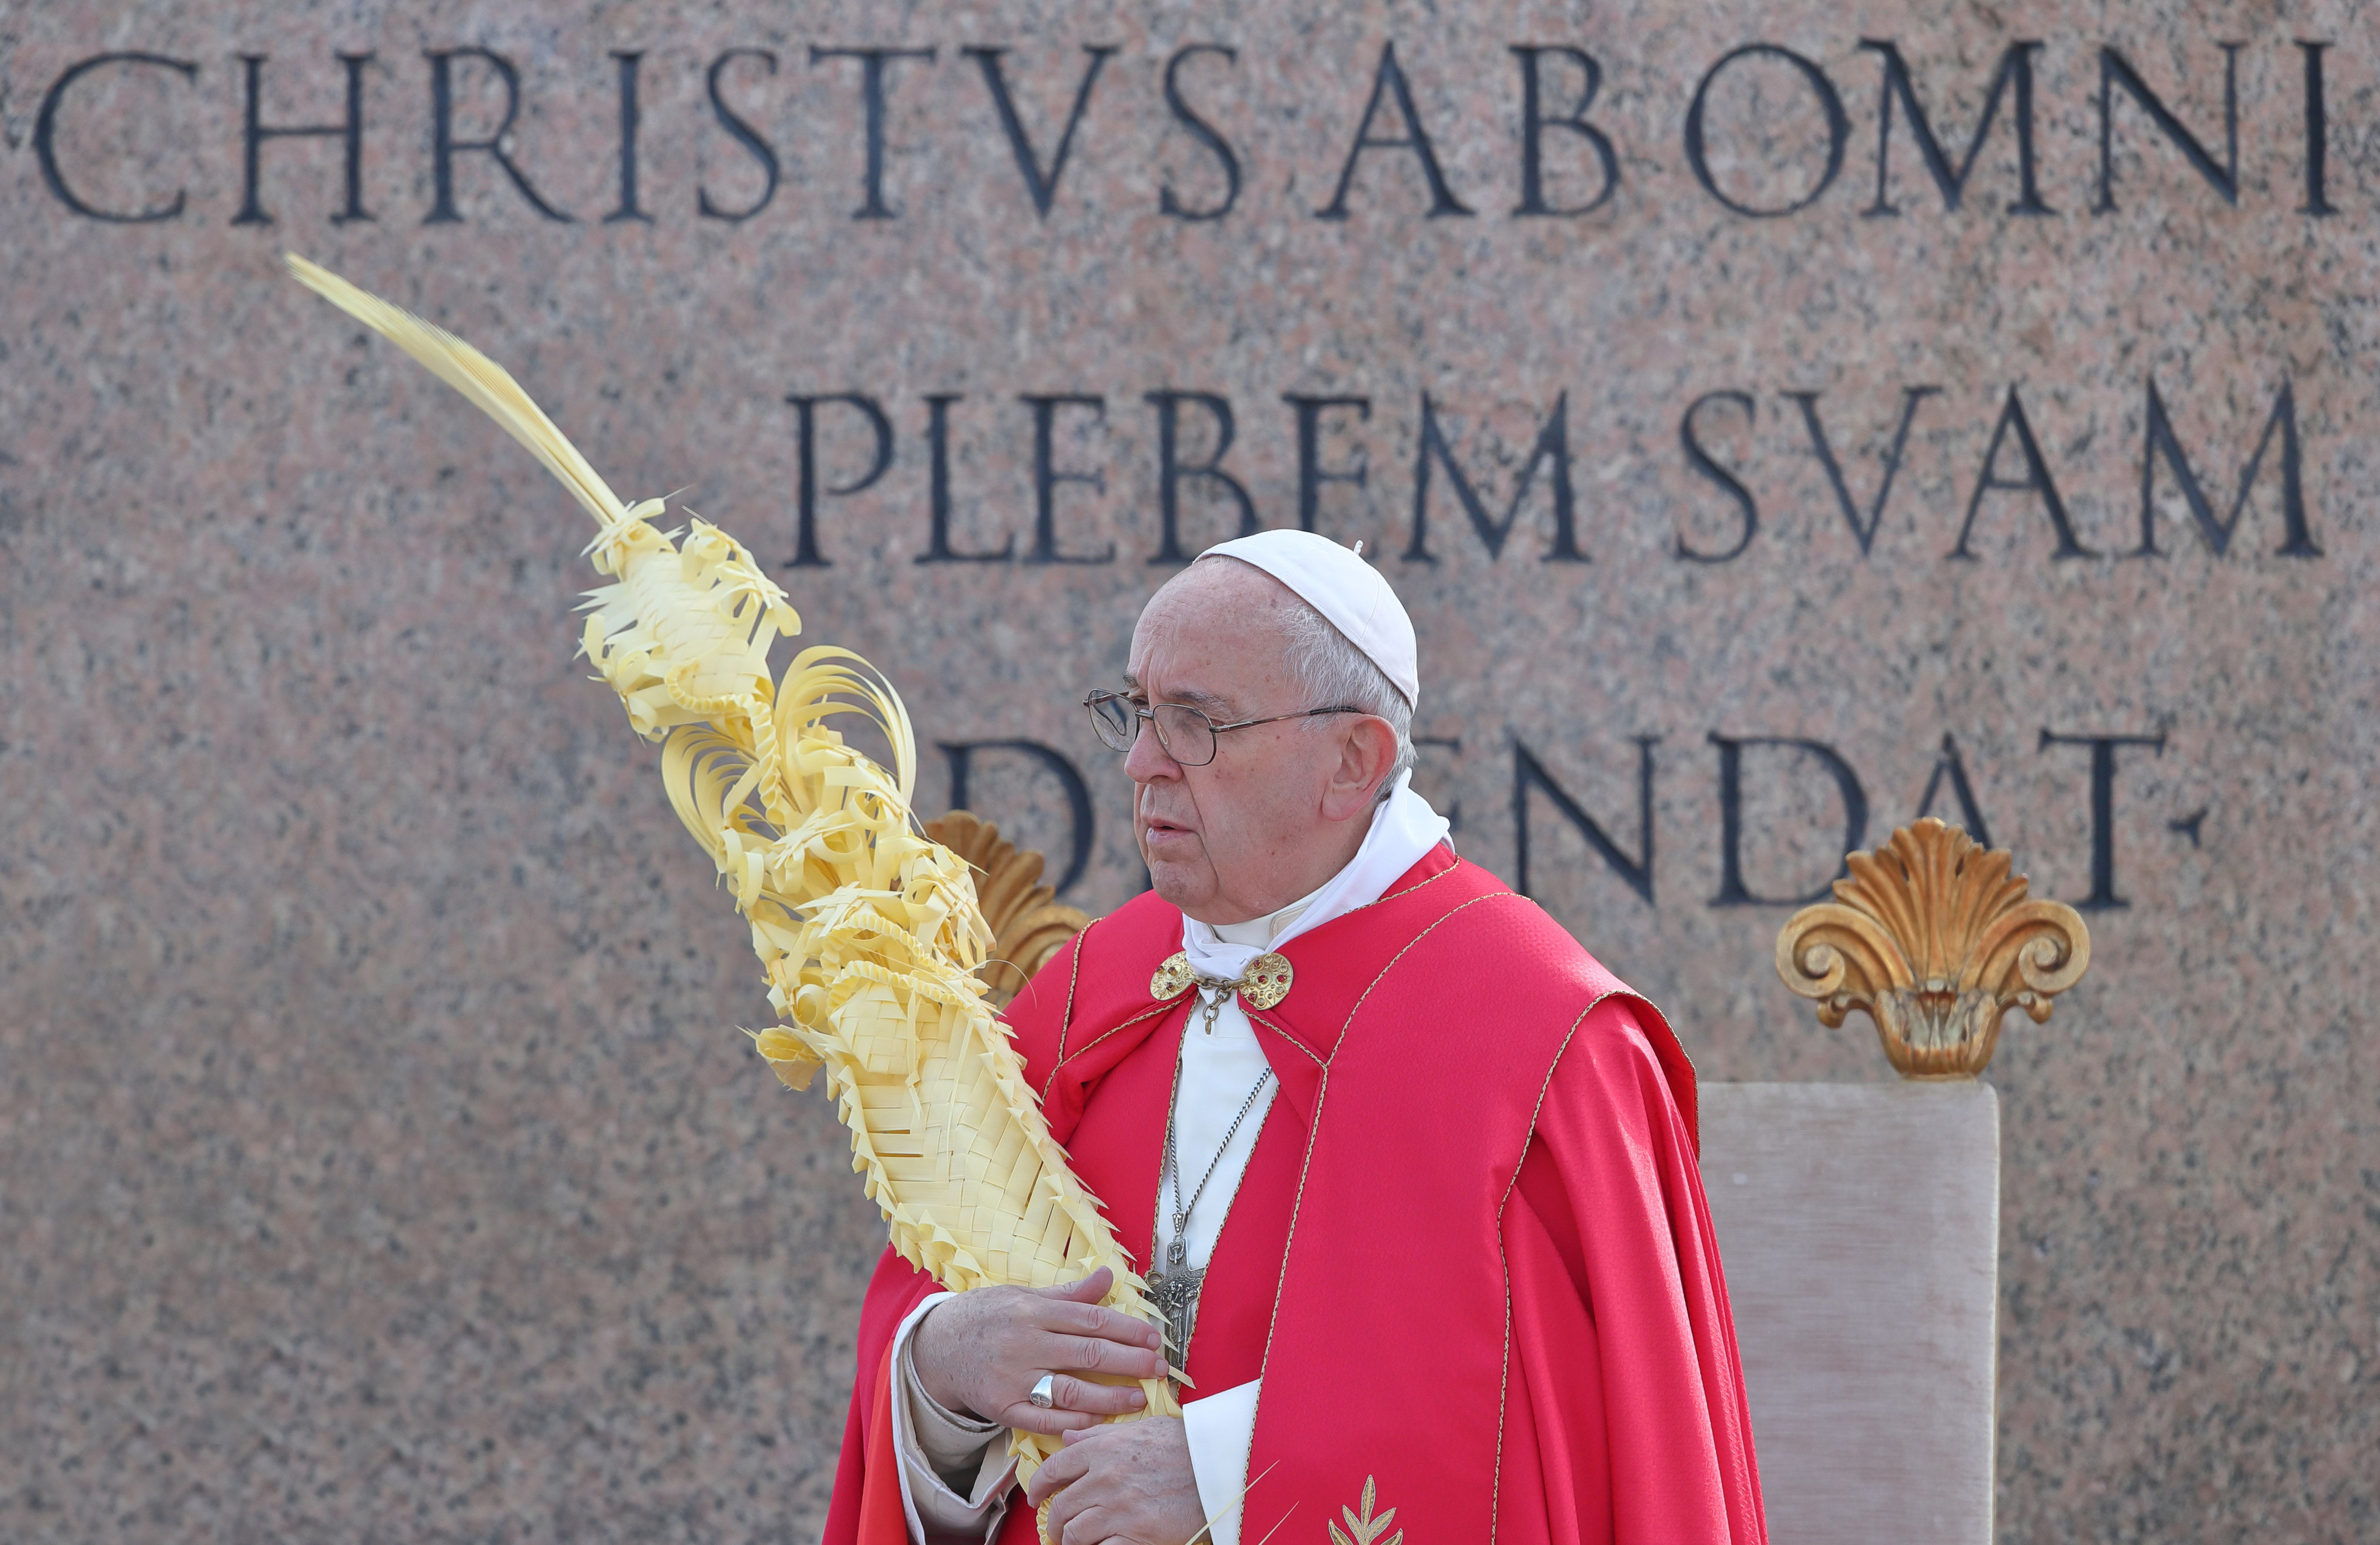 Pope Francis blesses palm and olive branches with holy water in occasion of Palm Sunday and the Passion of the Lord at Saint Peter's Square.